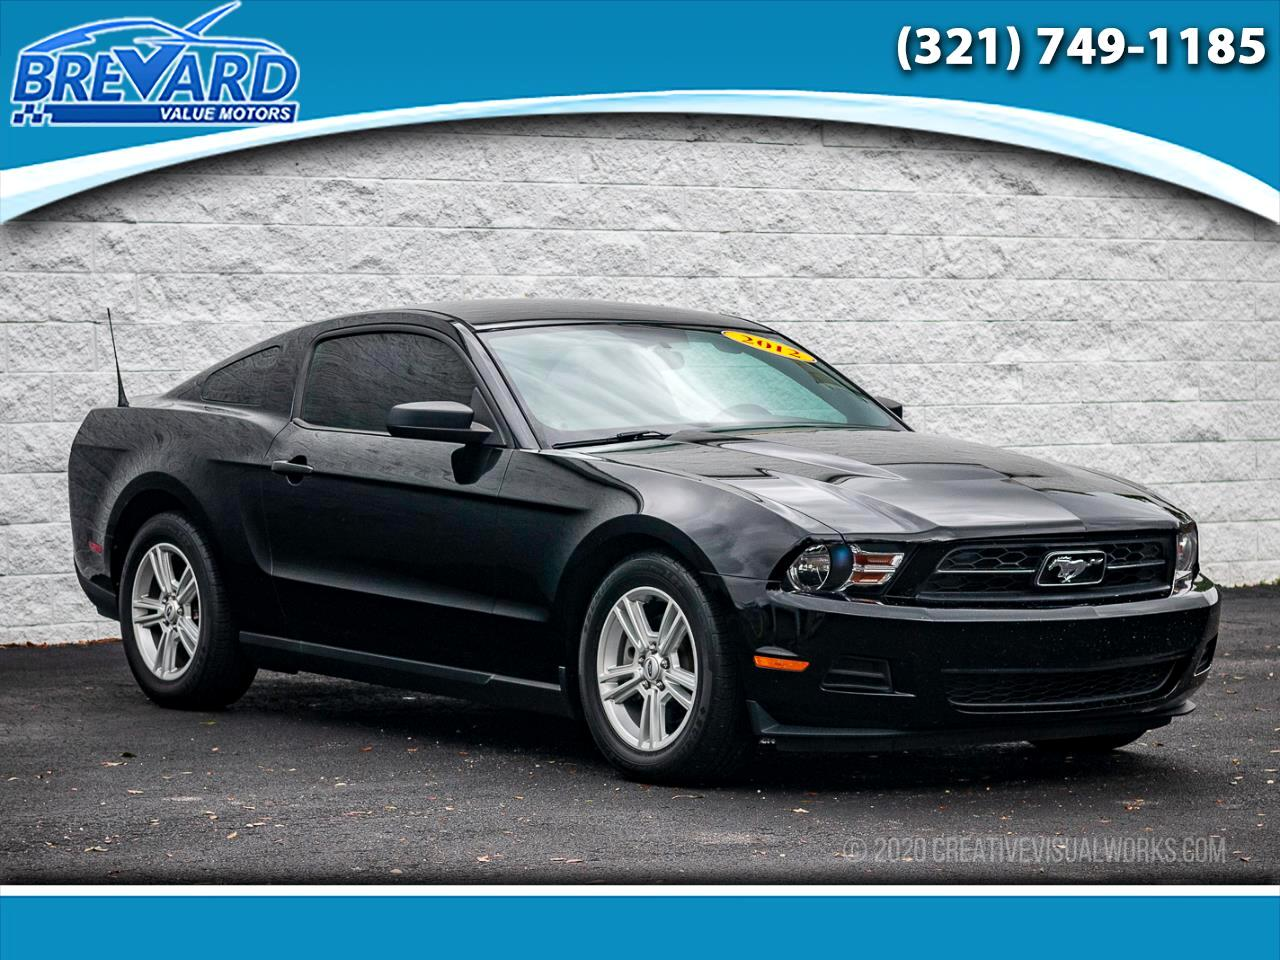 Ford Mustang Premium Coupe 2012